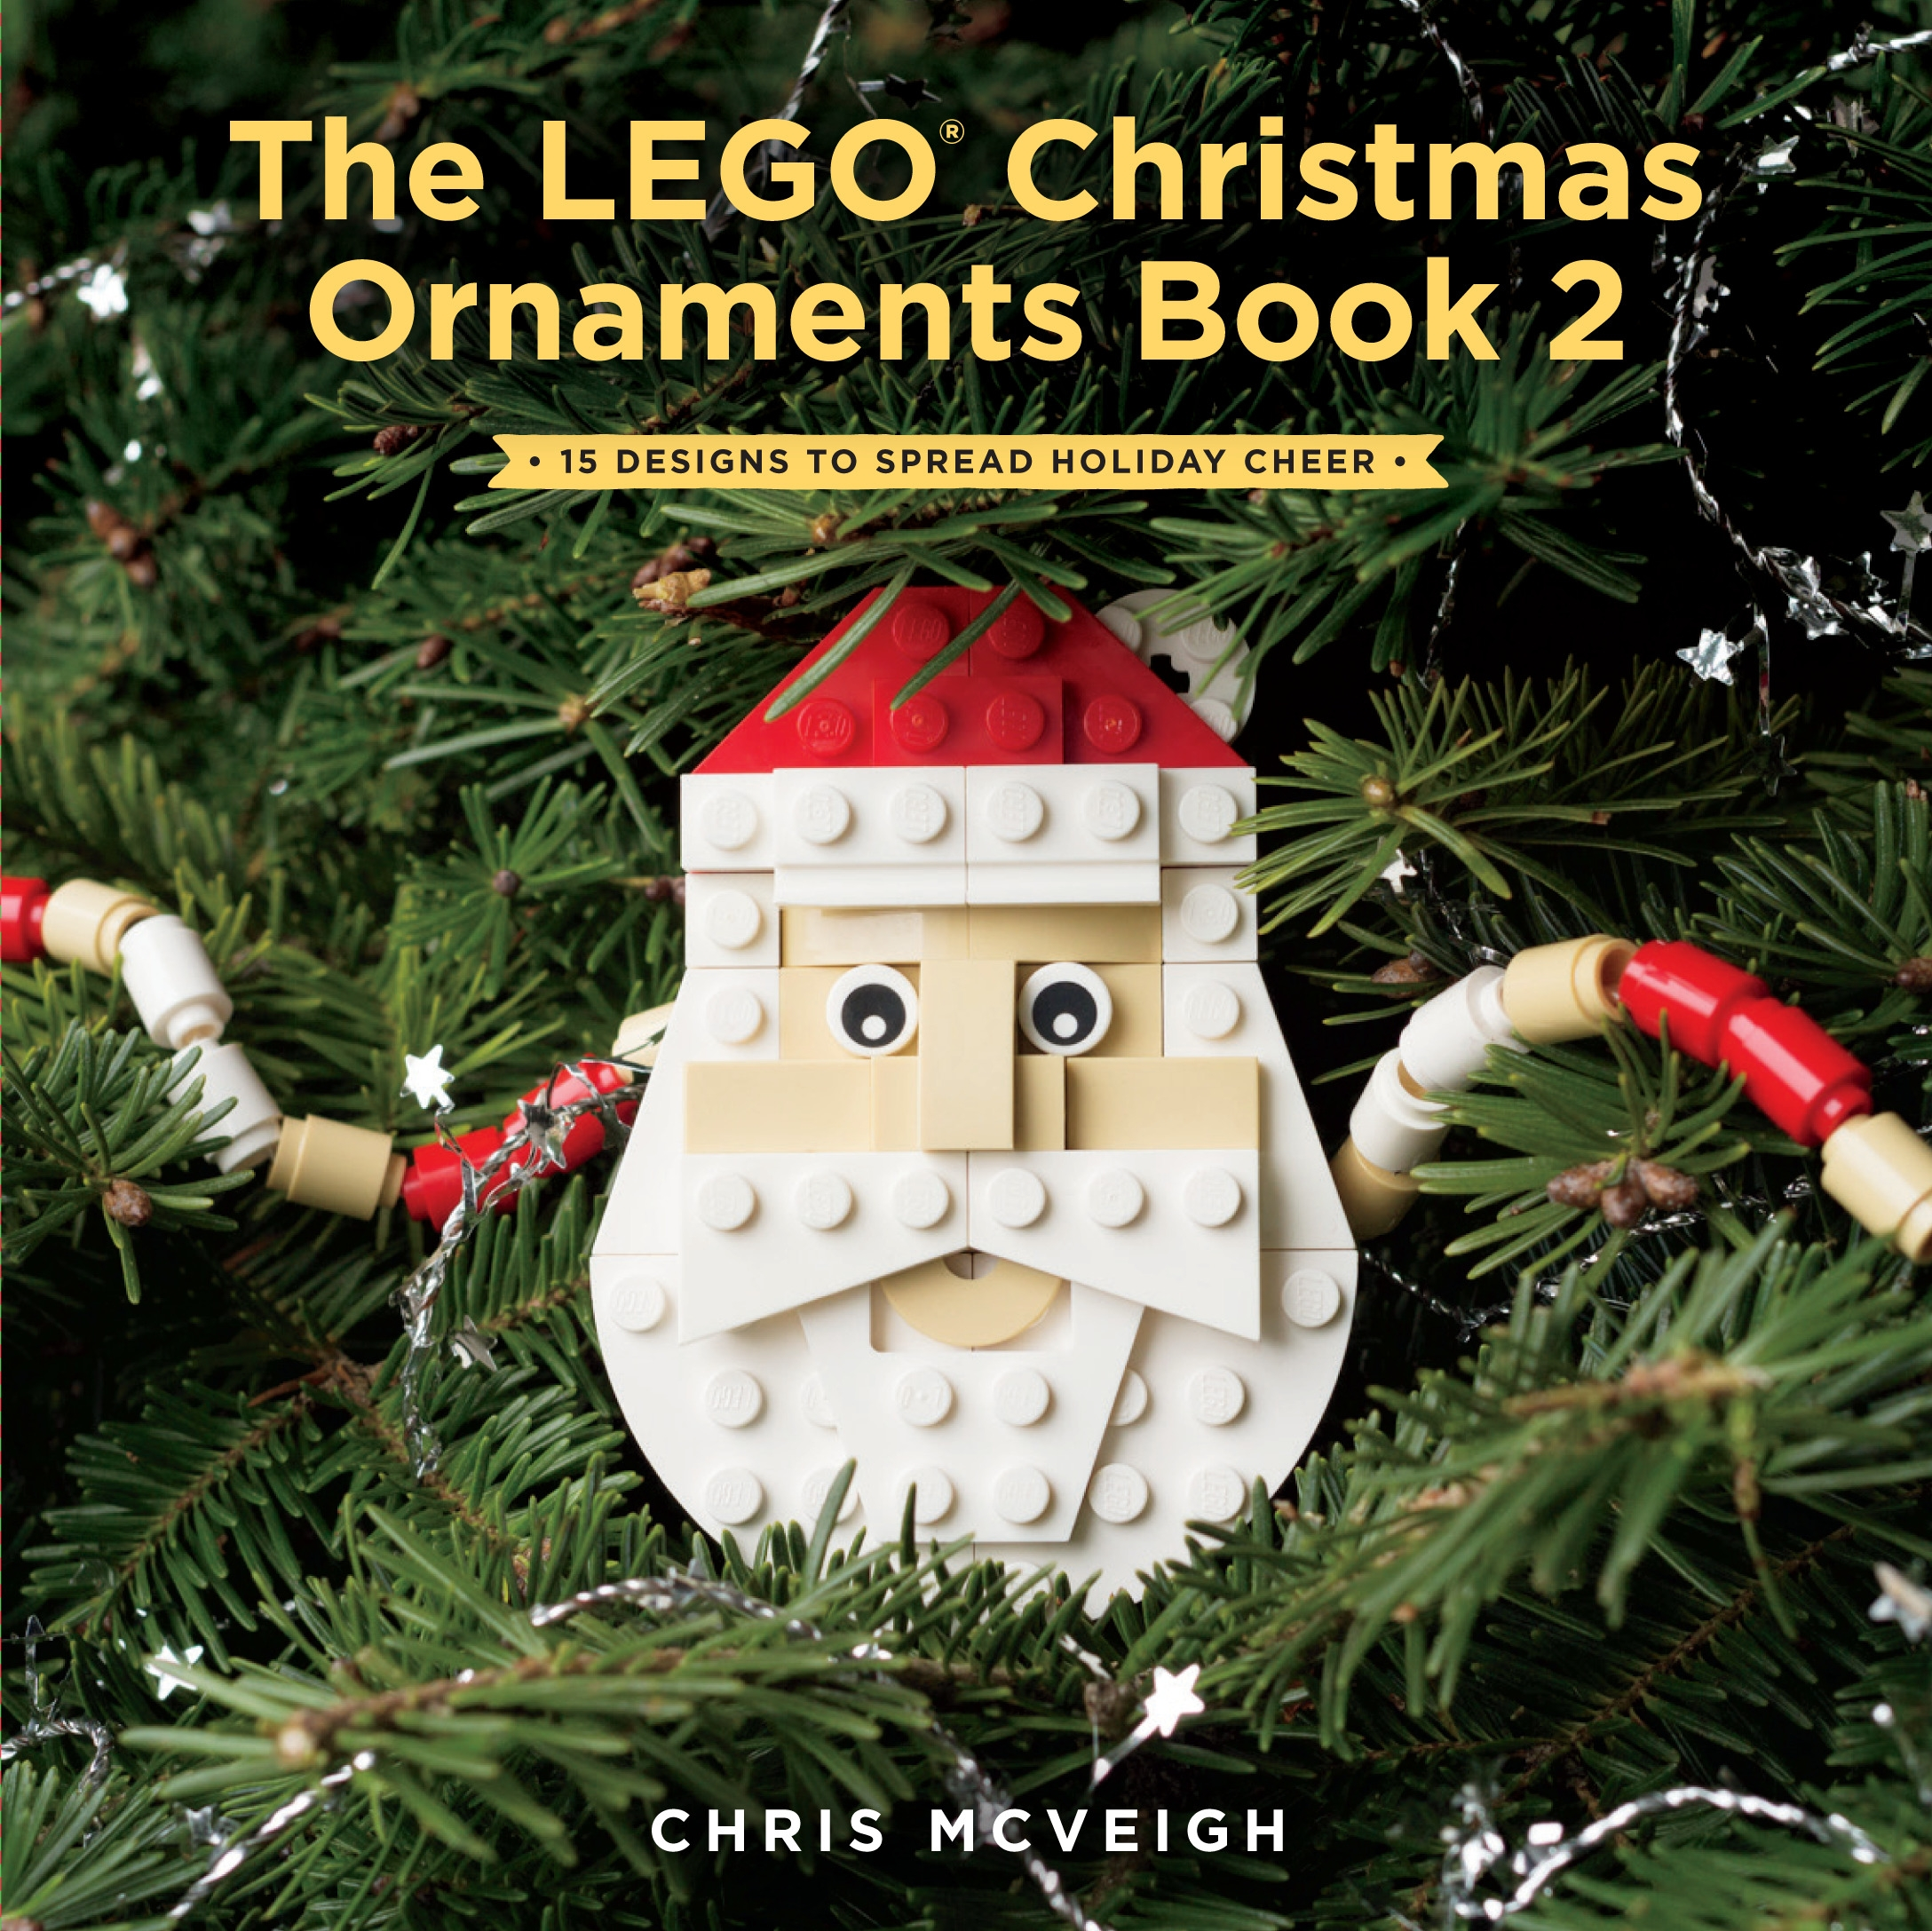 Christmas In Australia Book.The Lego Christmas Ornaments Book Volume 2 By Chris Mcveigh